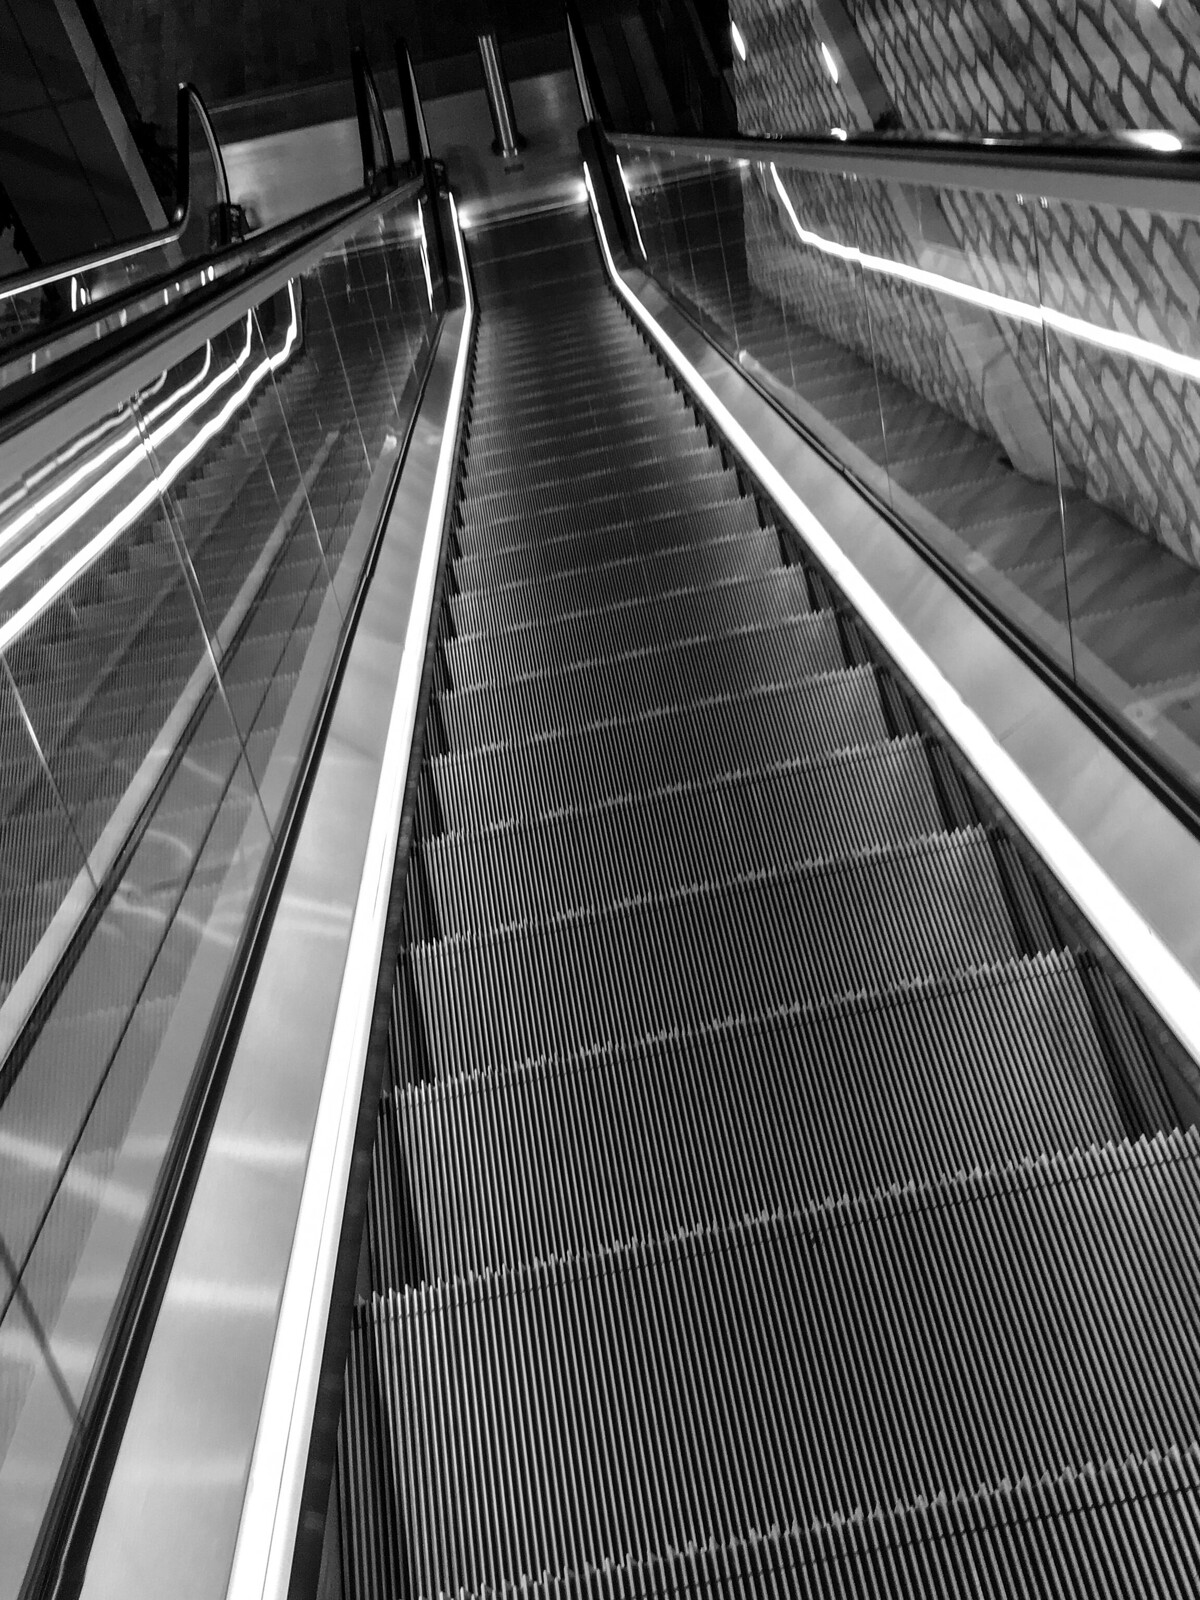 Westgate escalator